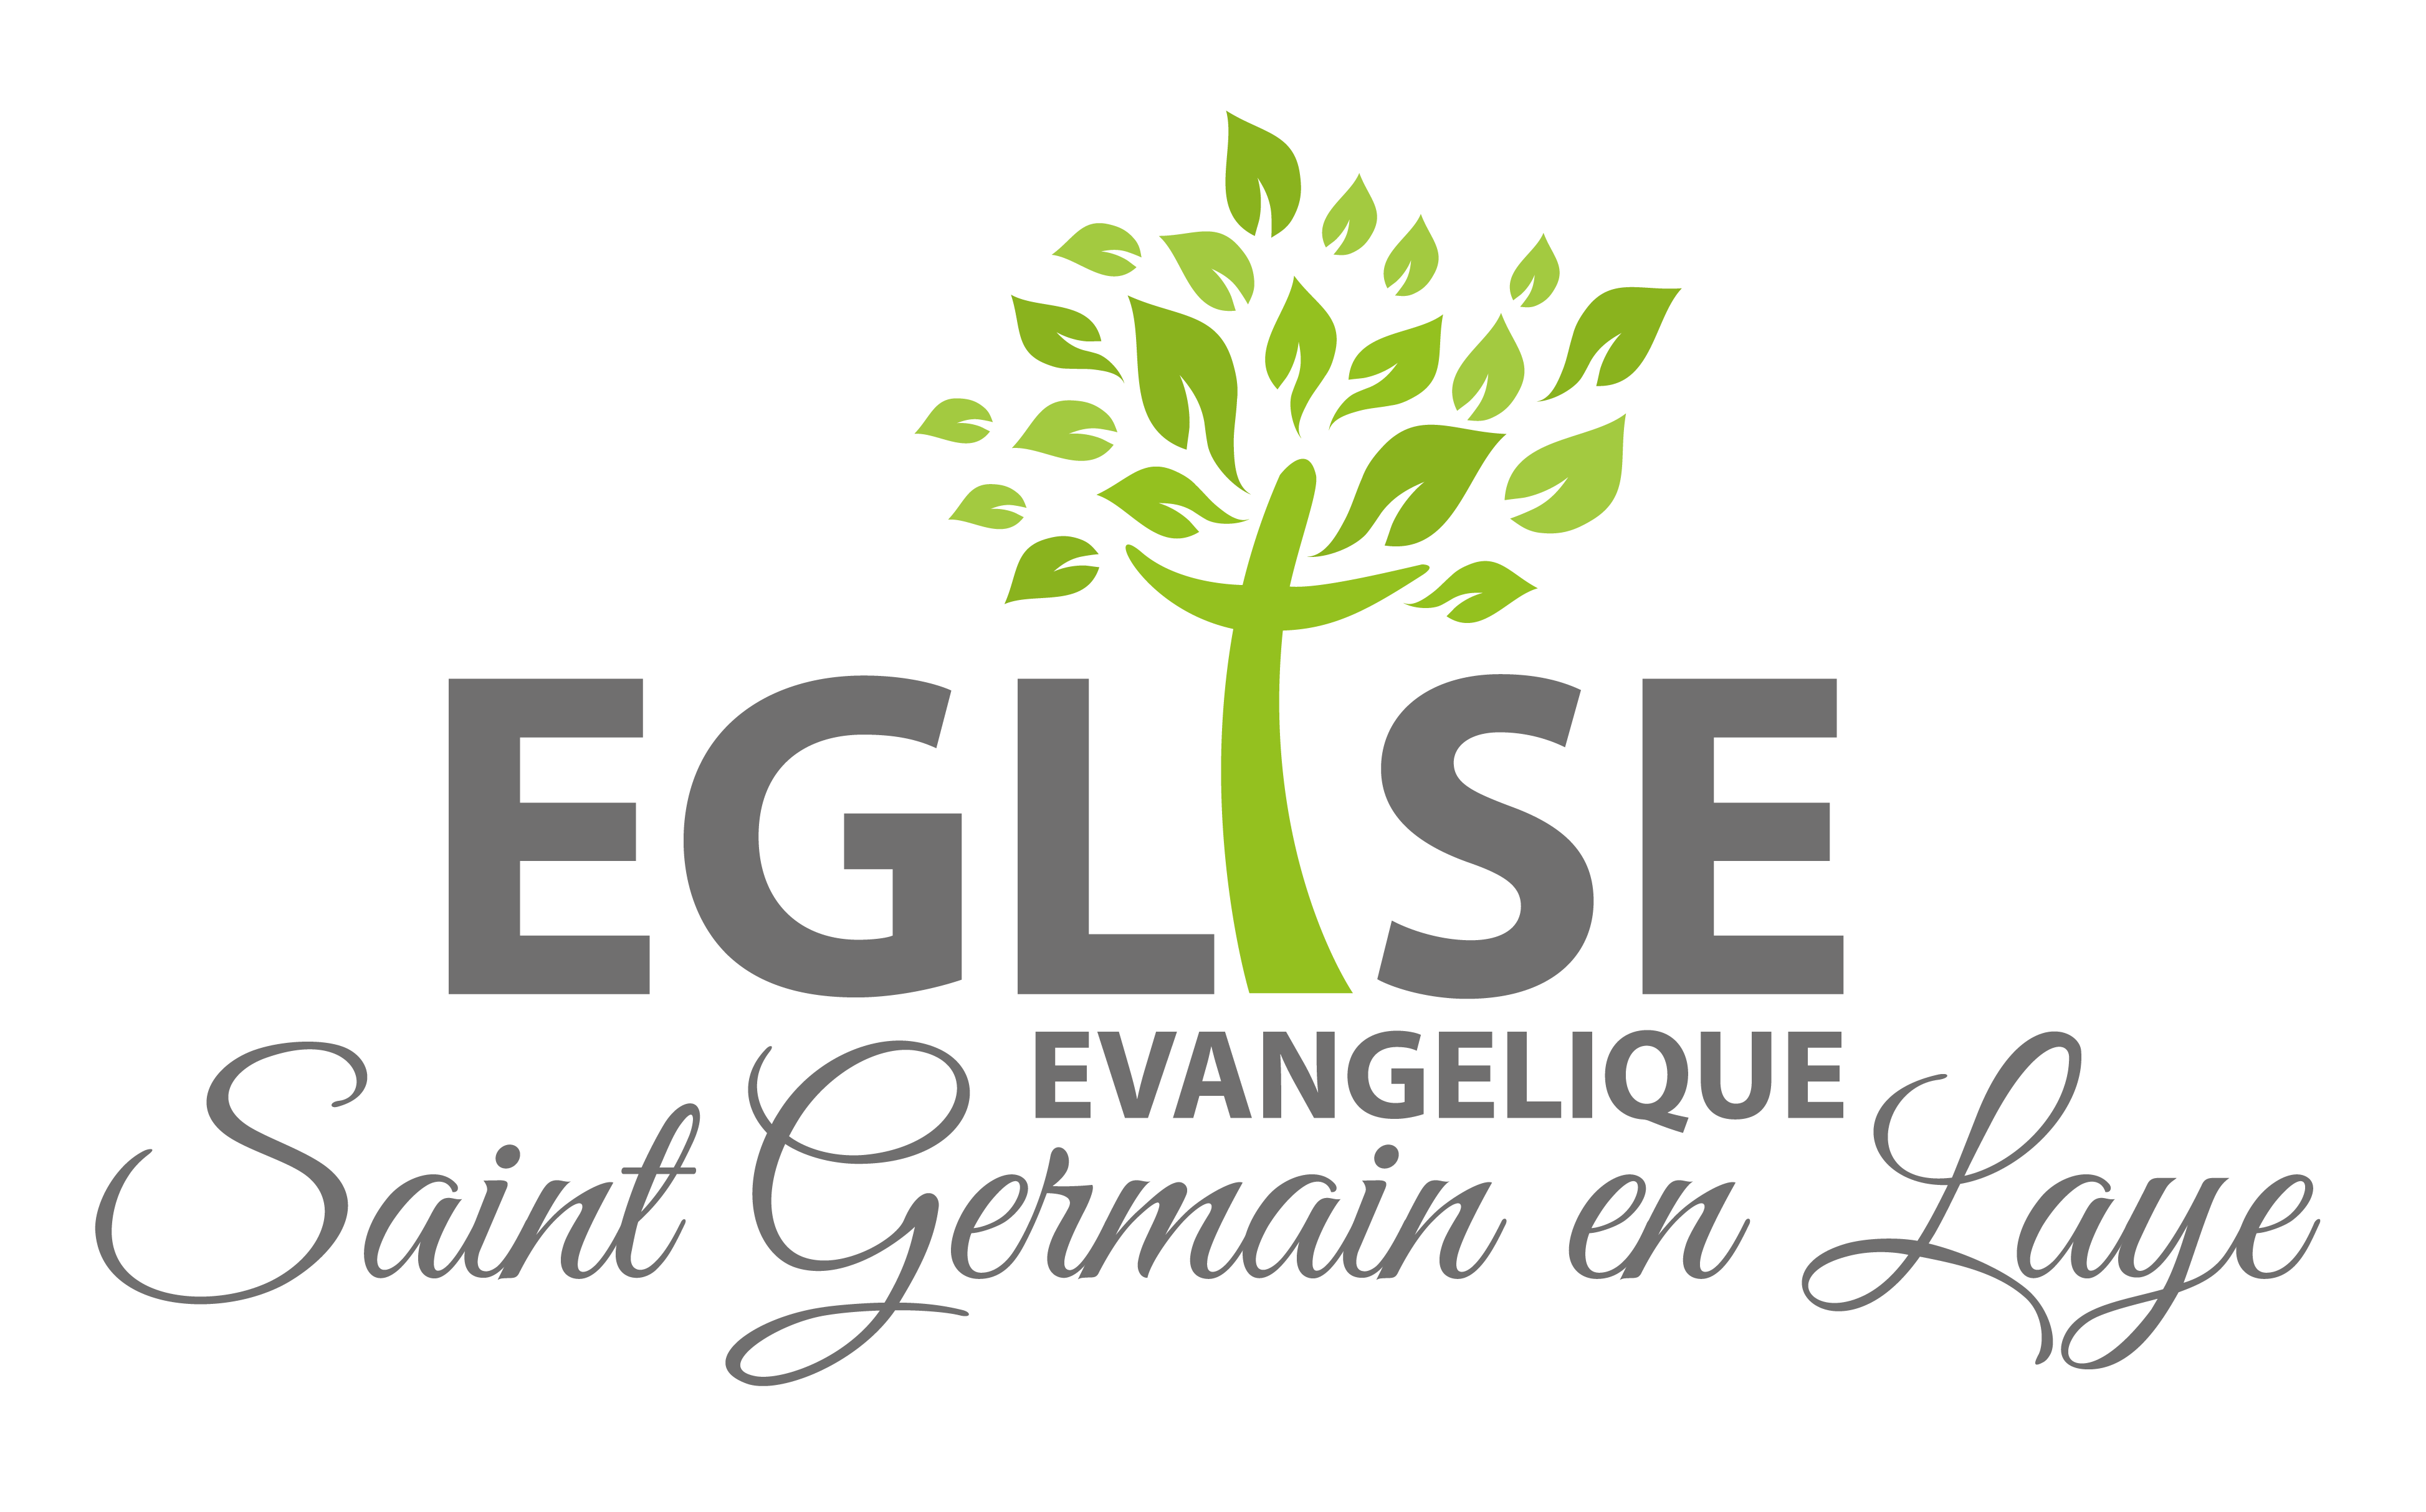 Association - Eglise Evangélique de St Germain en Laye